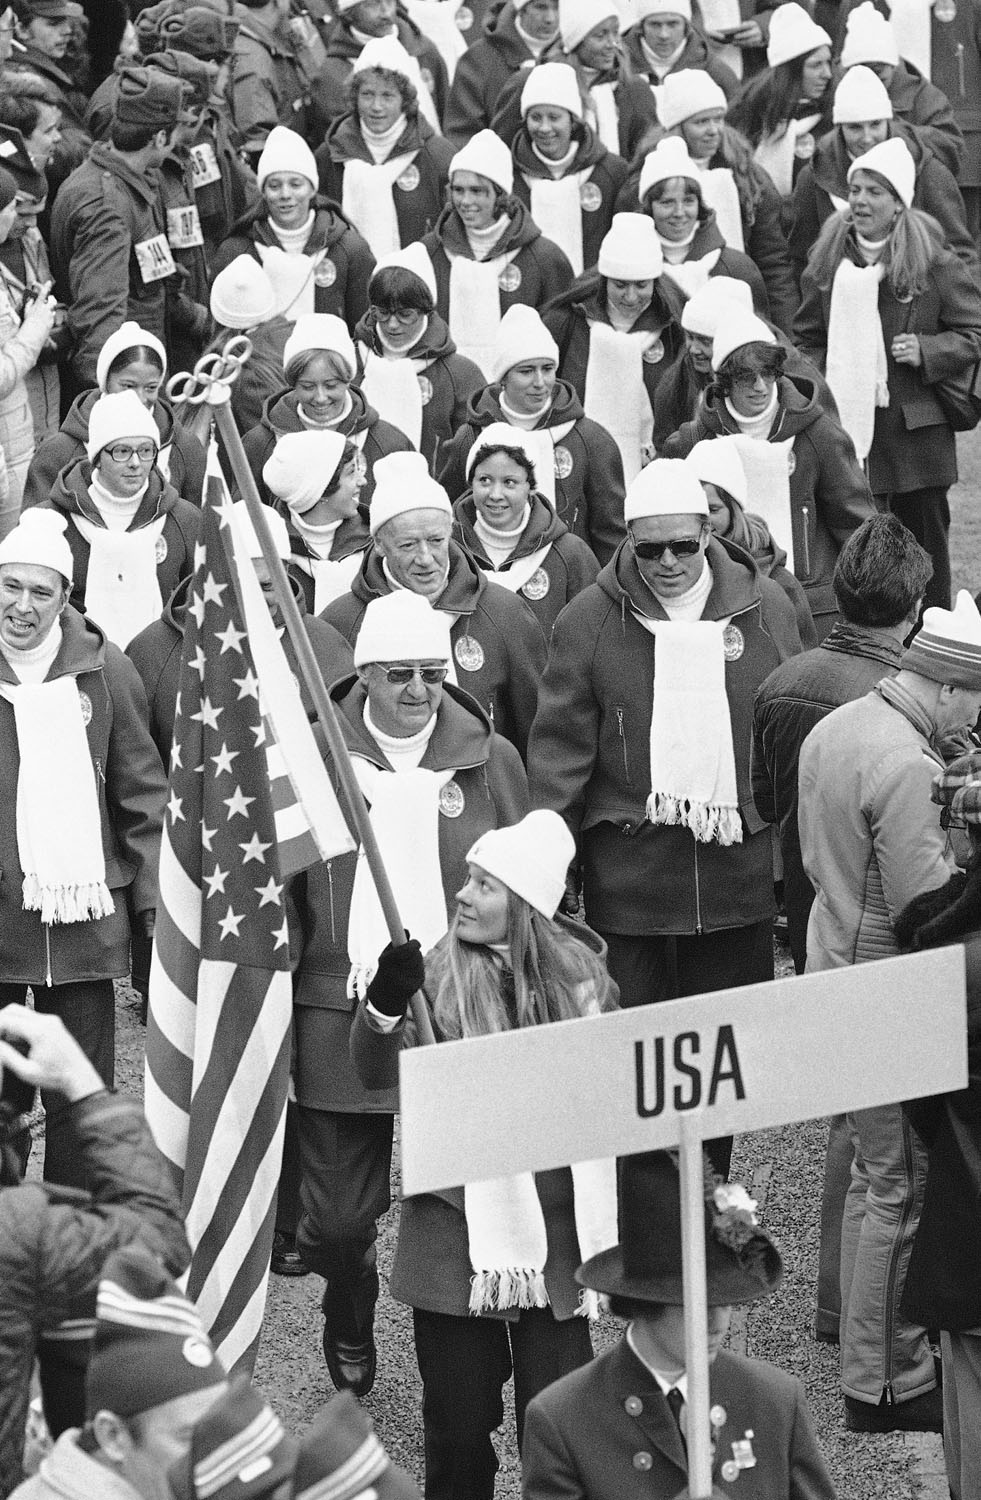 Alpine skier Cindy Nelson bears the flag for the United States team during the opening ceremony of the 12th Winter Olympic Games on Feb. 4, 1976 in Innsbruck, Austria.